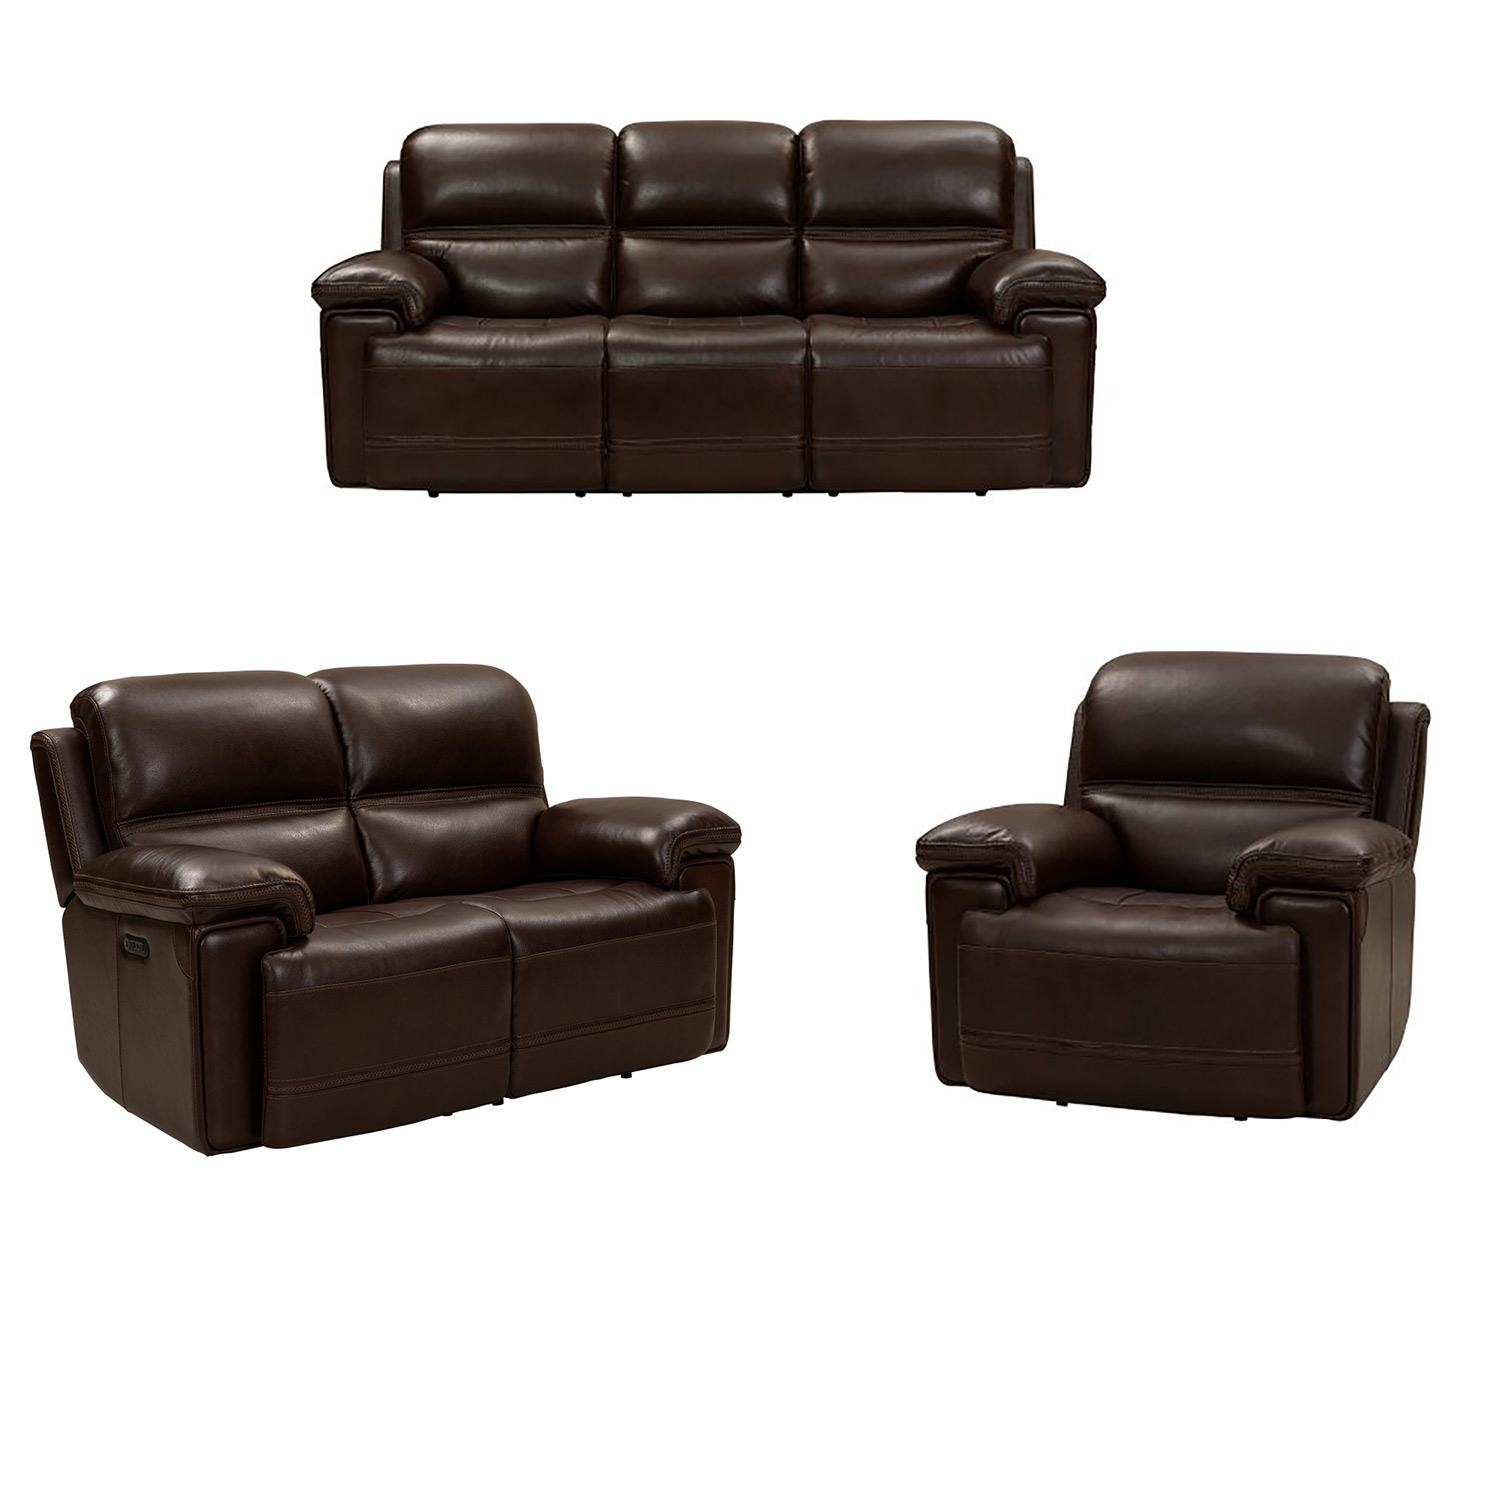 Barcalounger Sedrick Power Reclining Sofa Set with Power Head Rests - El Paso Walnut/Leather Match